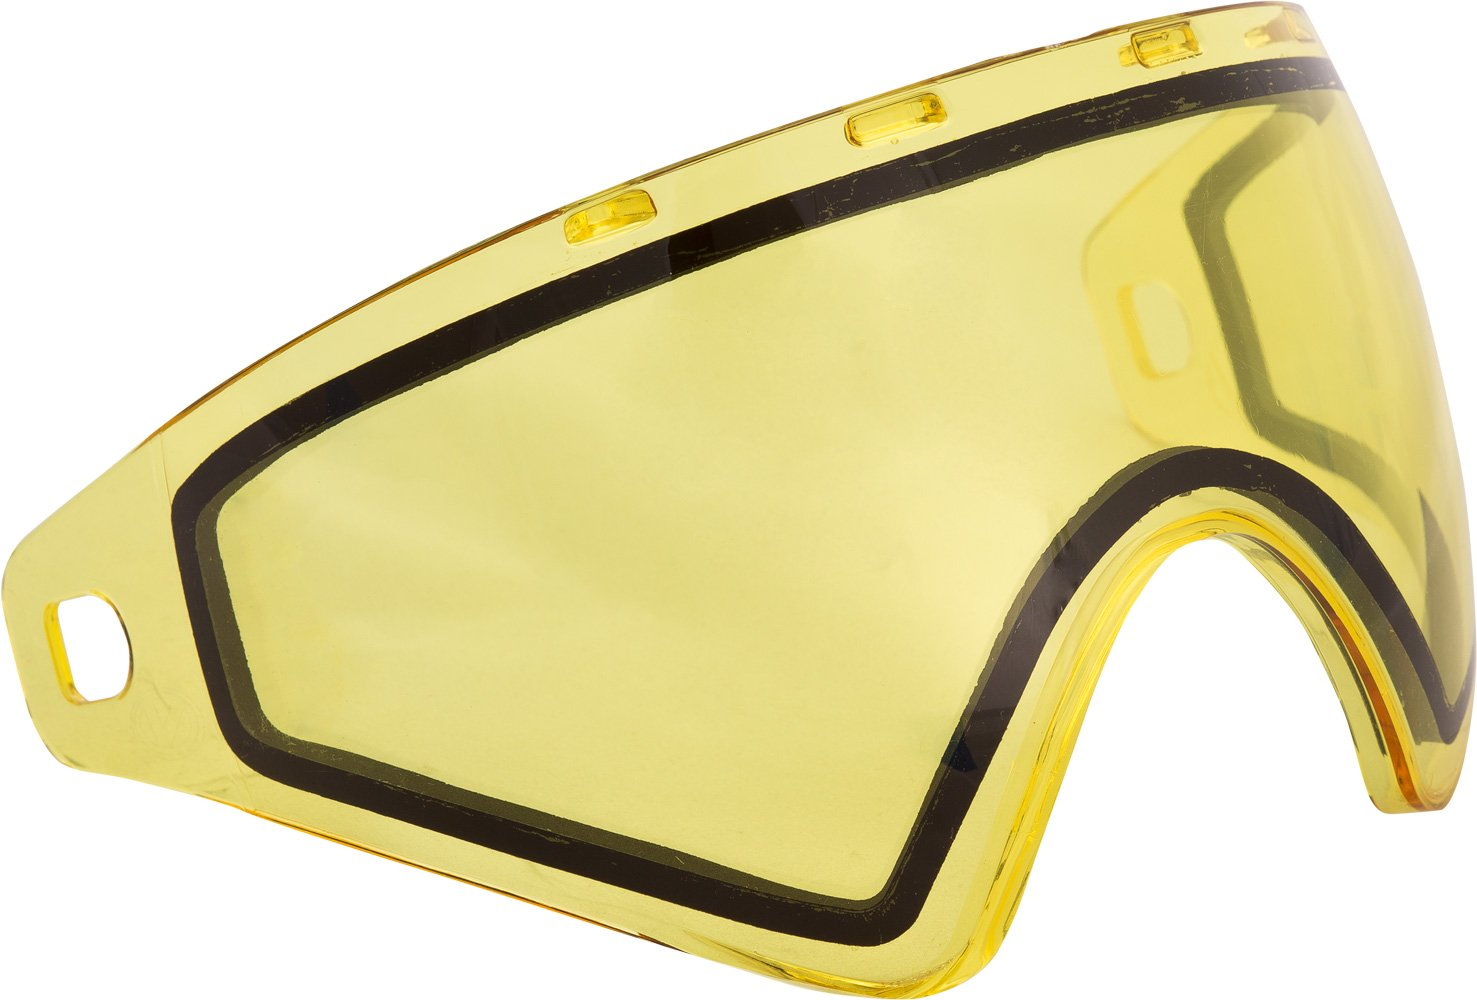 Virtue VIO Replacement Paintball Goggle Lens - Fits Ascend/Contour/Extend and XS Masks - Thermal High Contrast Yellow by Virtue Paintball